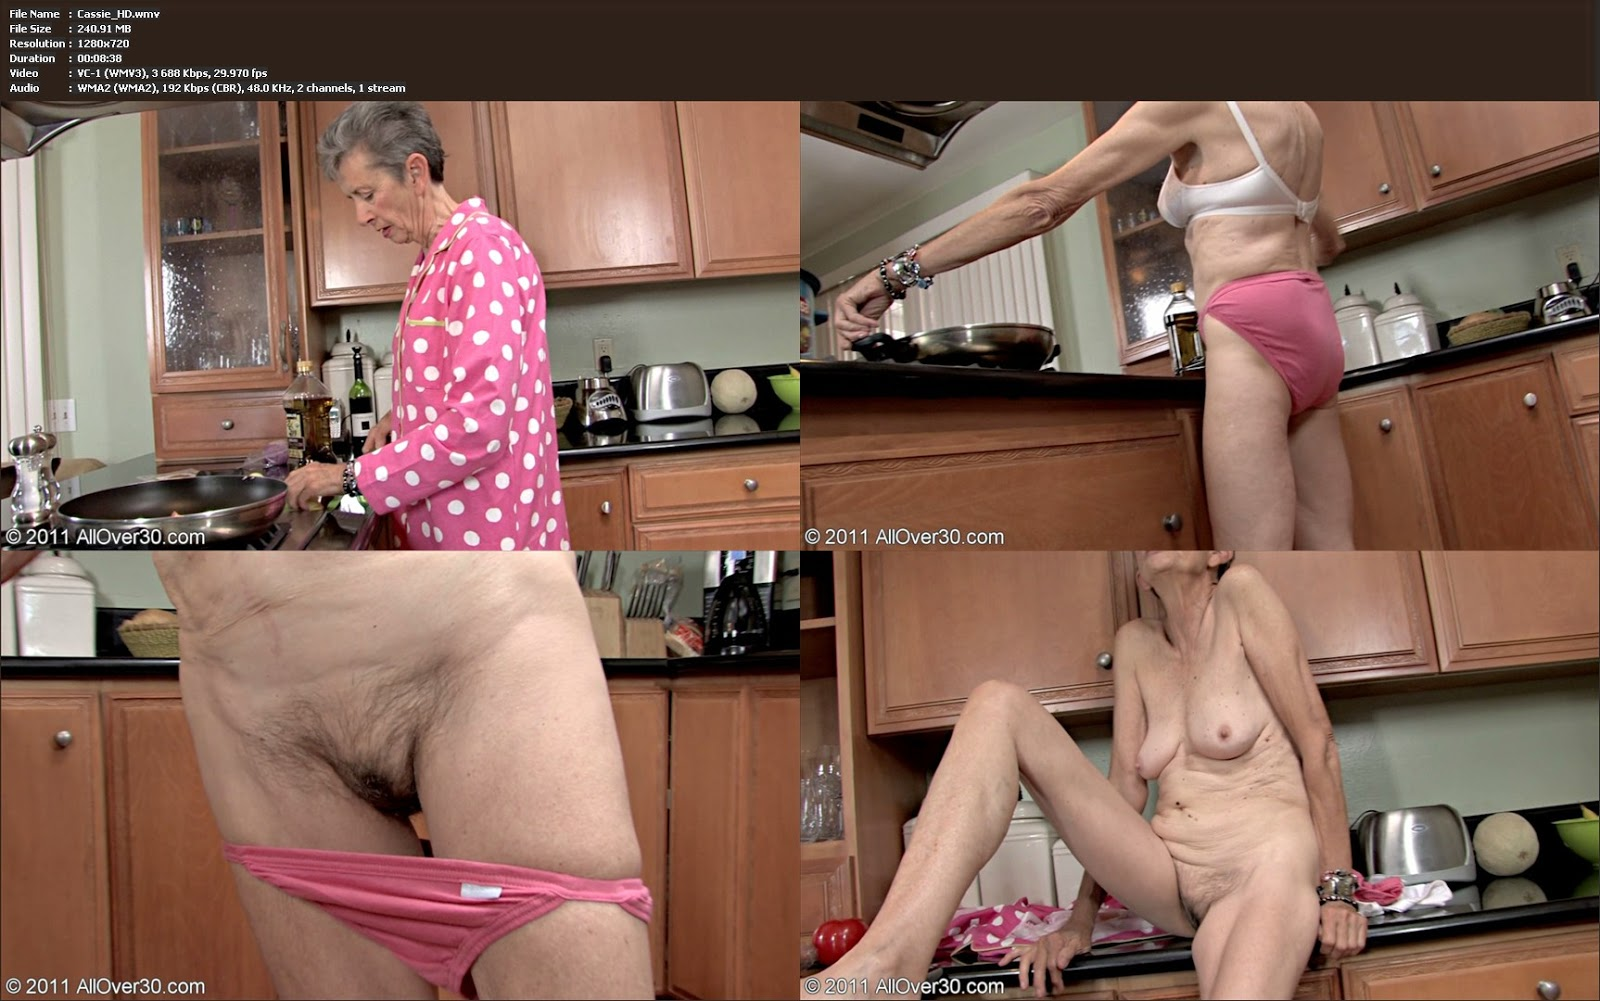 63 year old gilf still plays with her toys it4reborn - 4 1